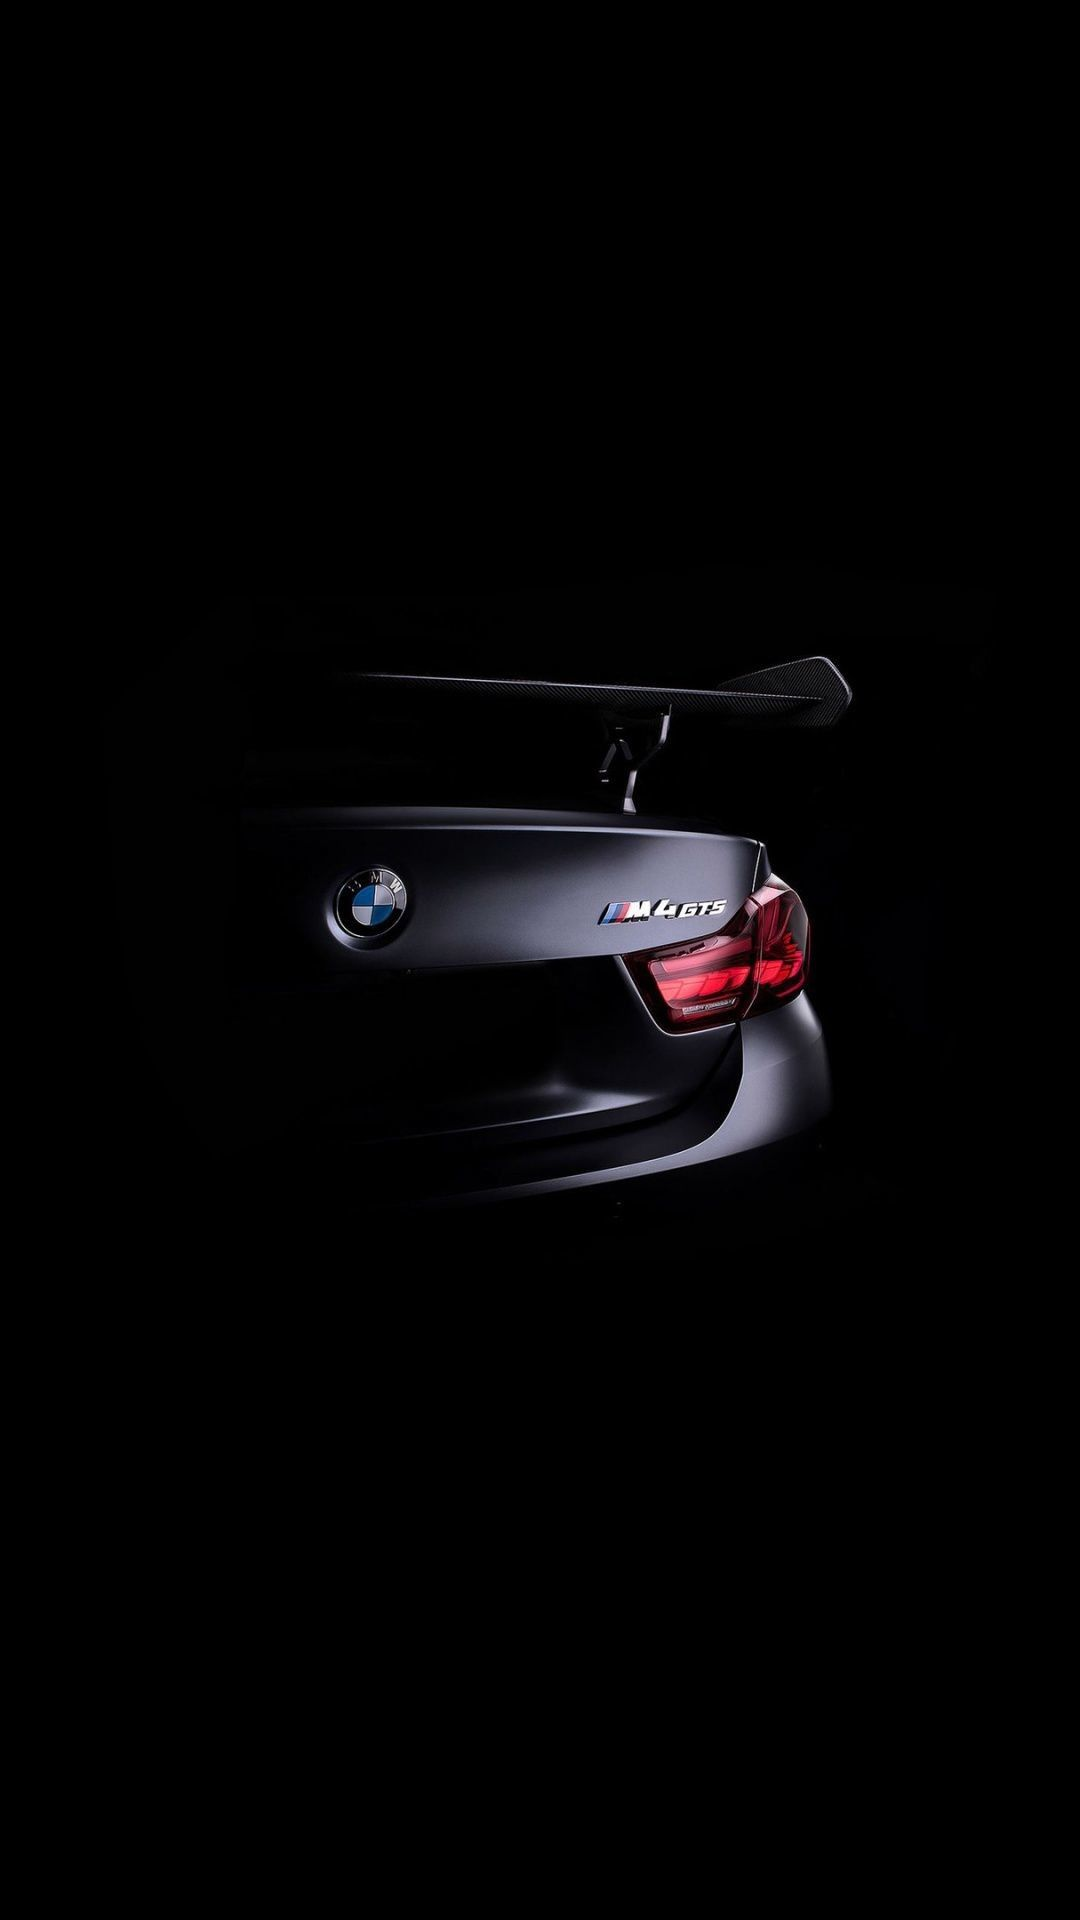 Bmw Wallpaper 4k : wallpaper, Wallpapers, Backgrounds, WallpaperAccess